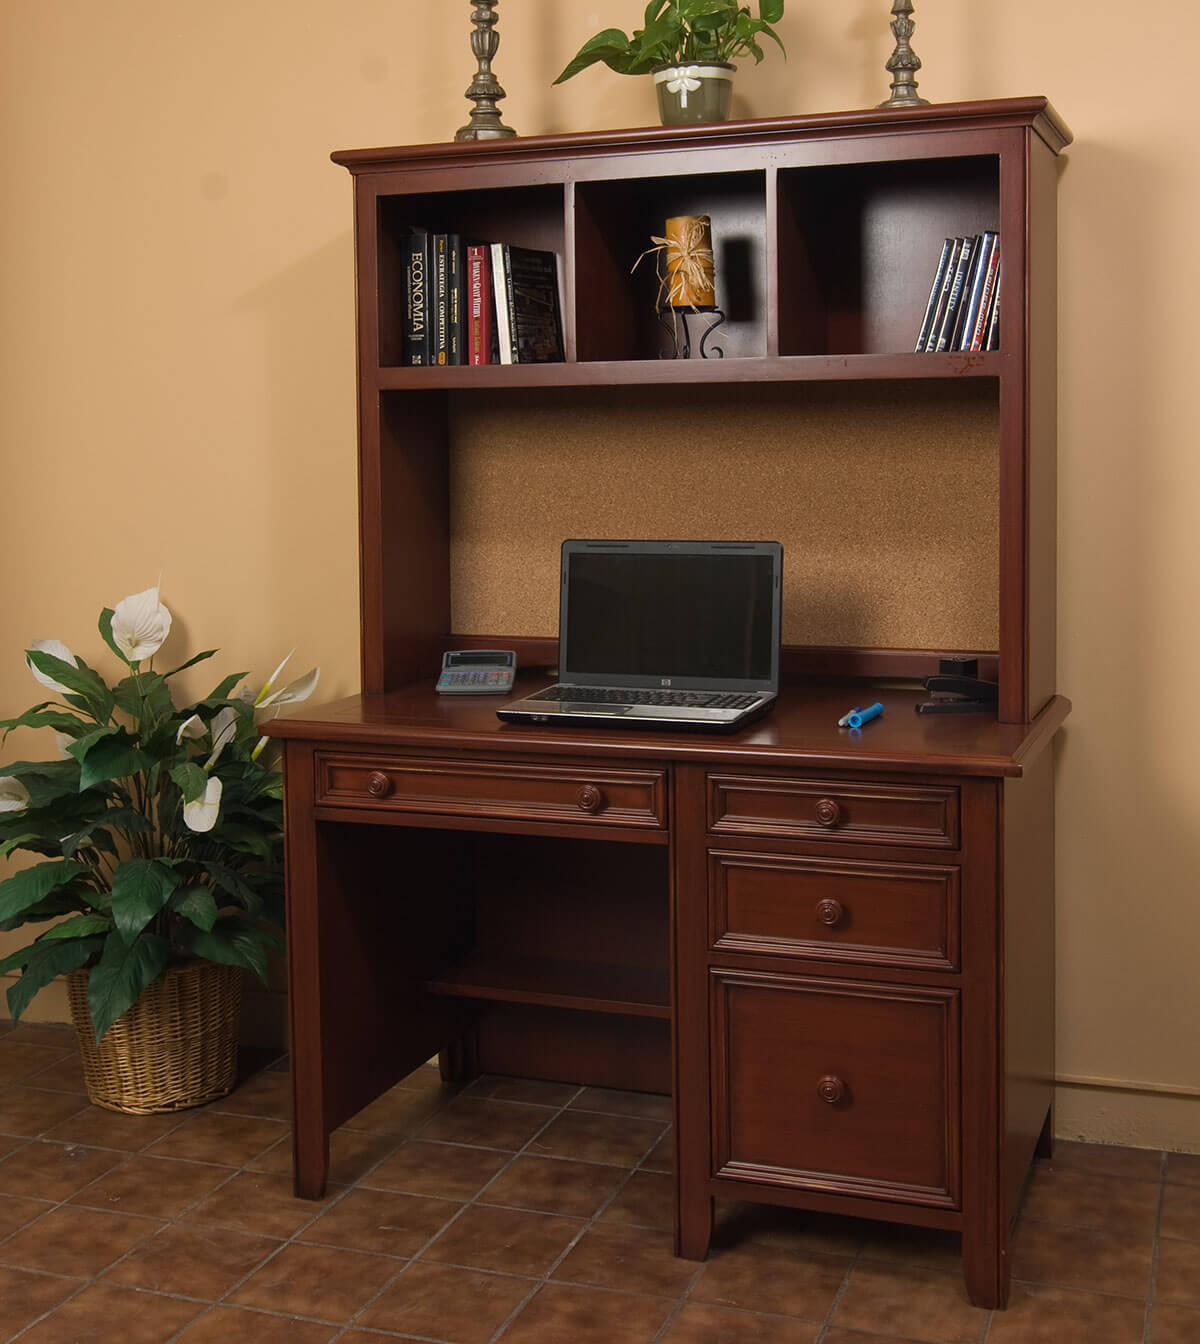 Monroe Desk Bedrooms Amp More Bedrooms Amp More Seattle